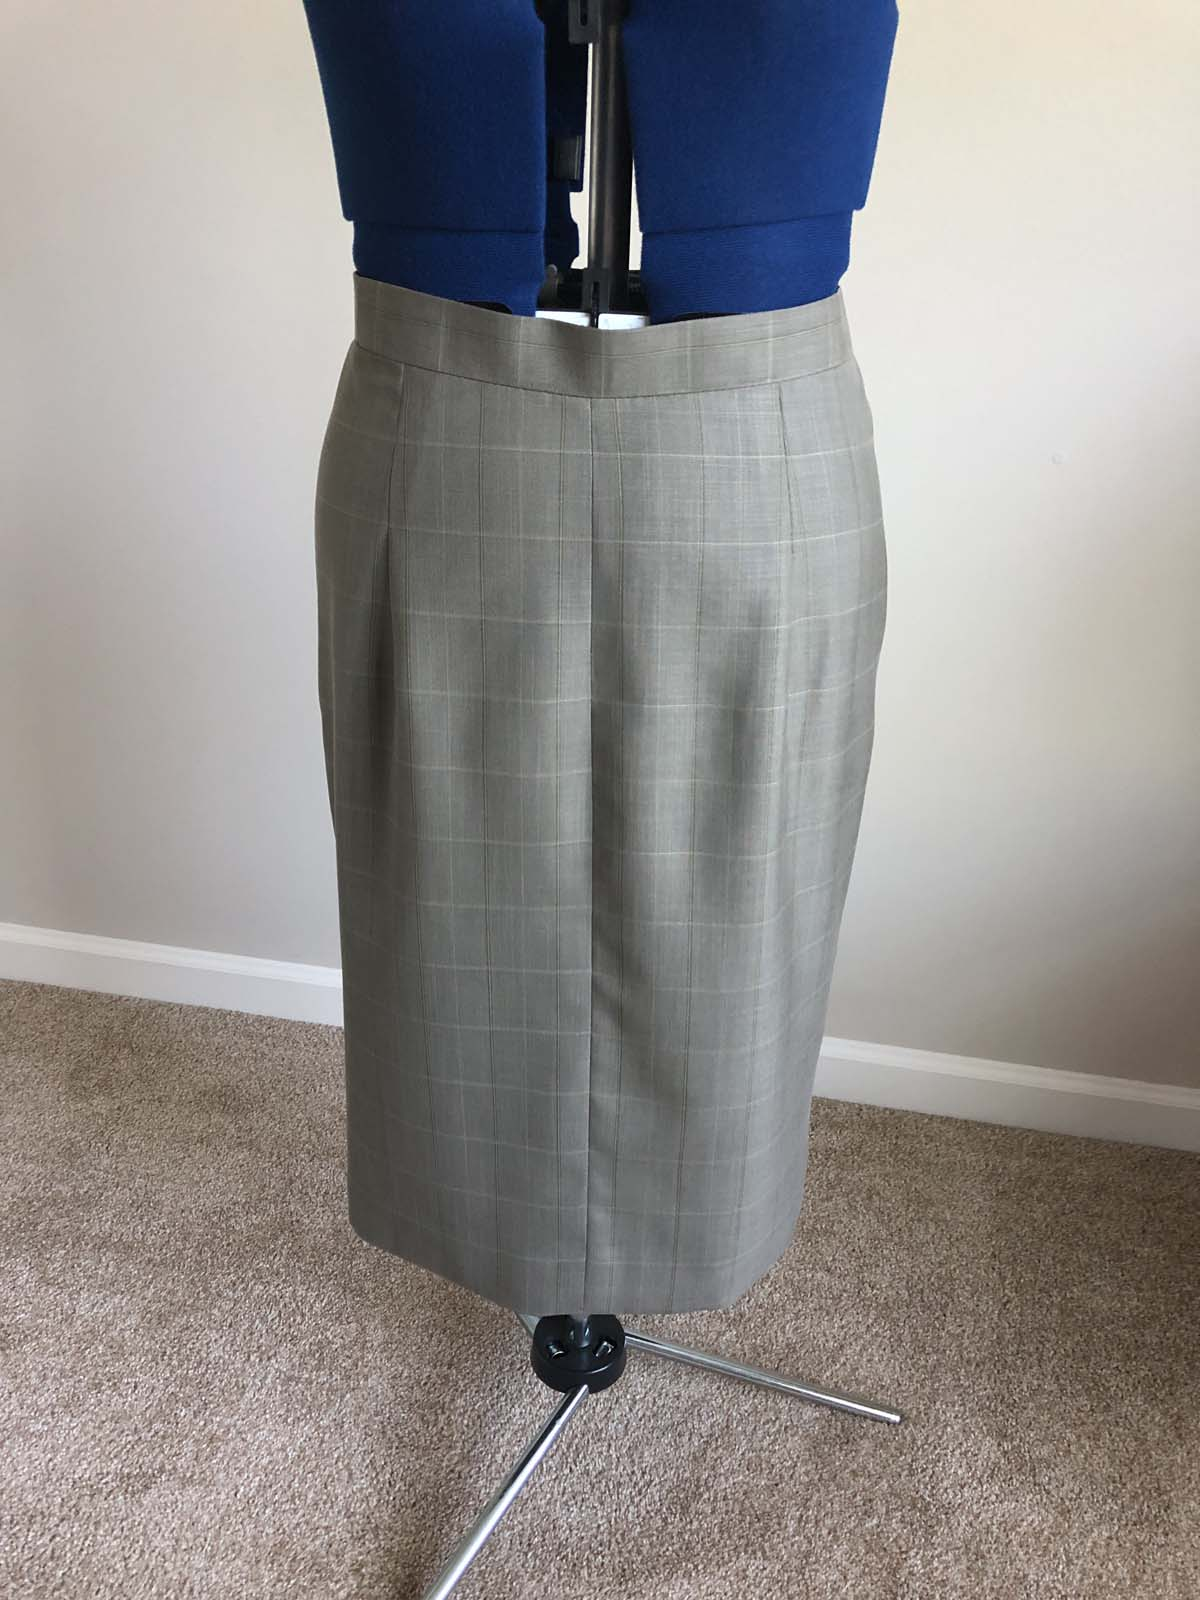 Finished skirt front, on dress form; skirt created from men's suit pants